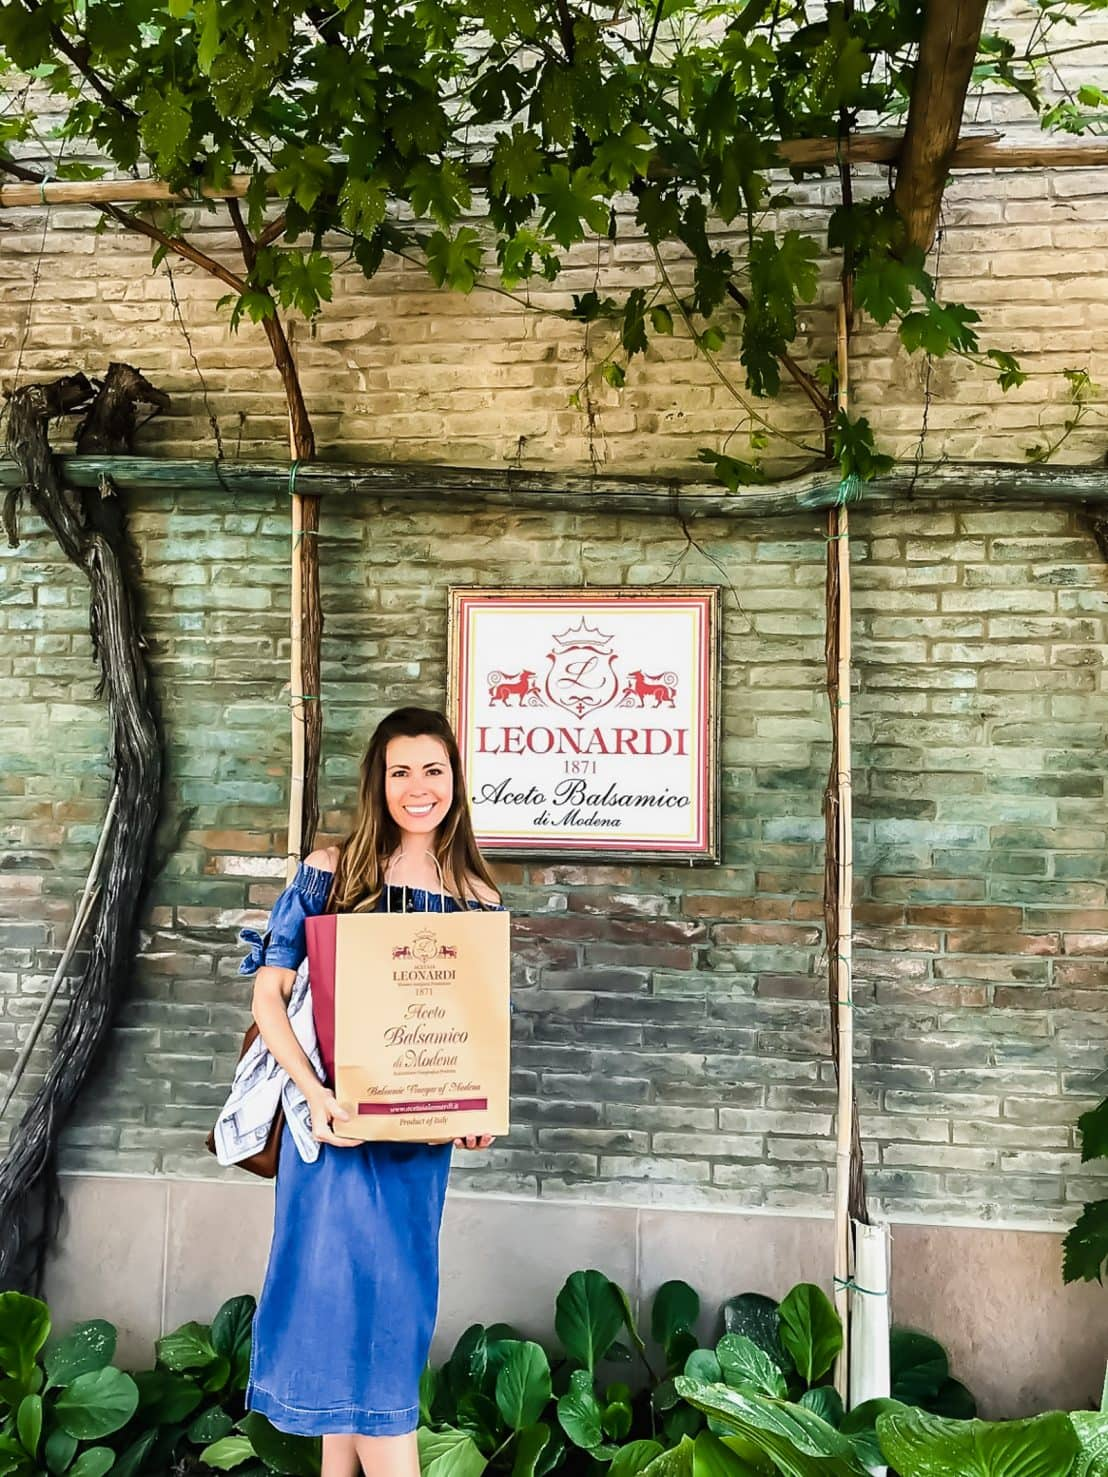 A young woman holding a shopping bag in front of a brick wall with a sign for Leonardi balsamic.